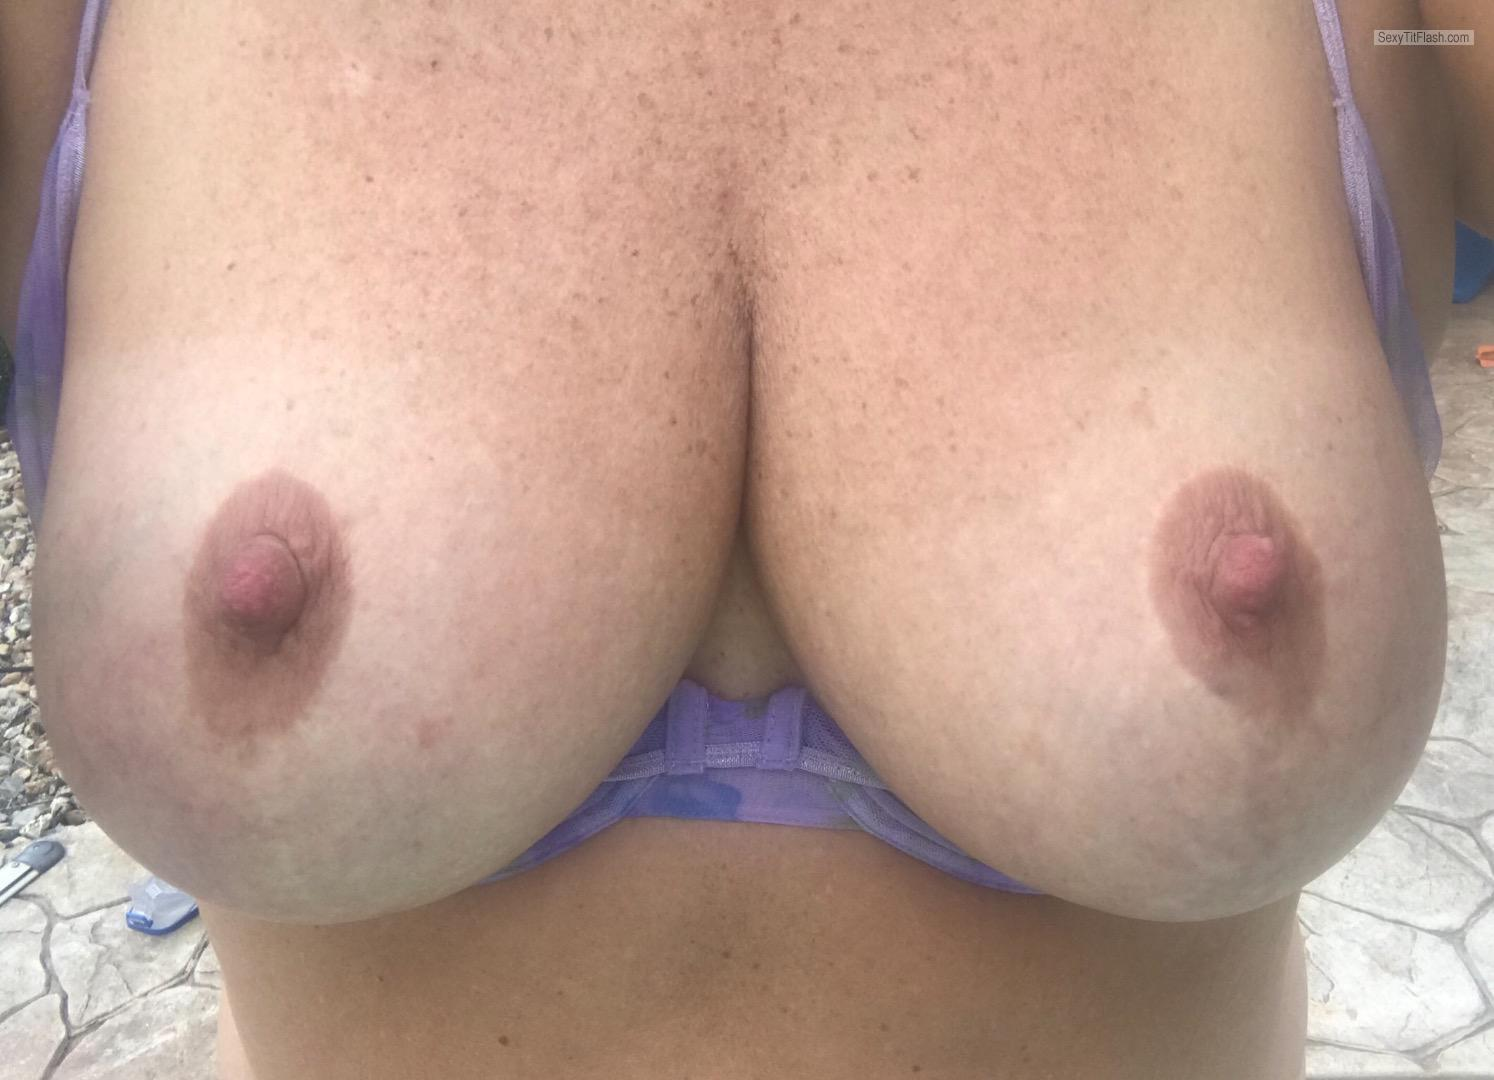 Tit Flash: My Big Tits (Selfie) - Love To Have Them Sucked And from United States